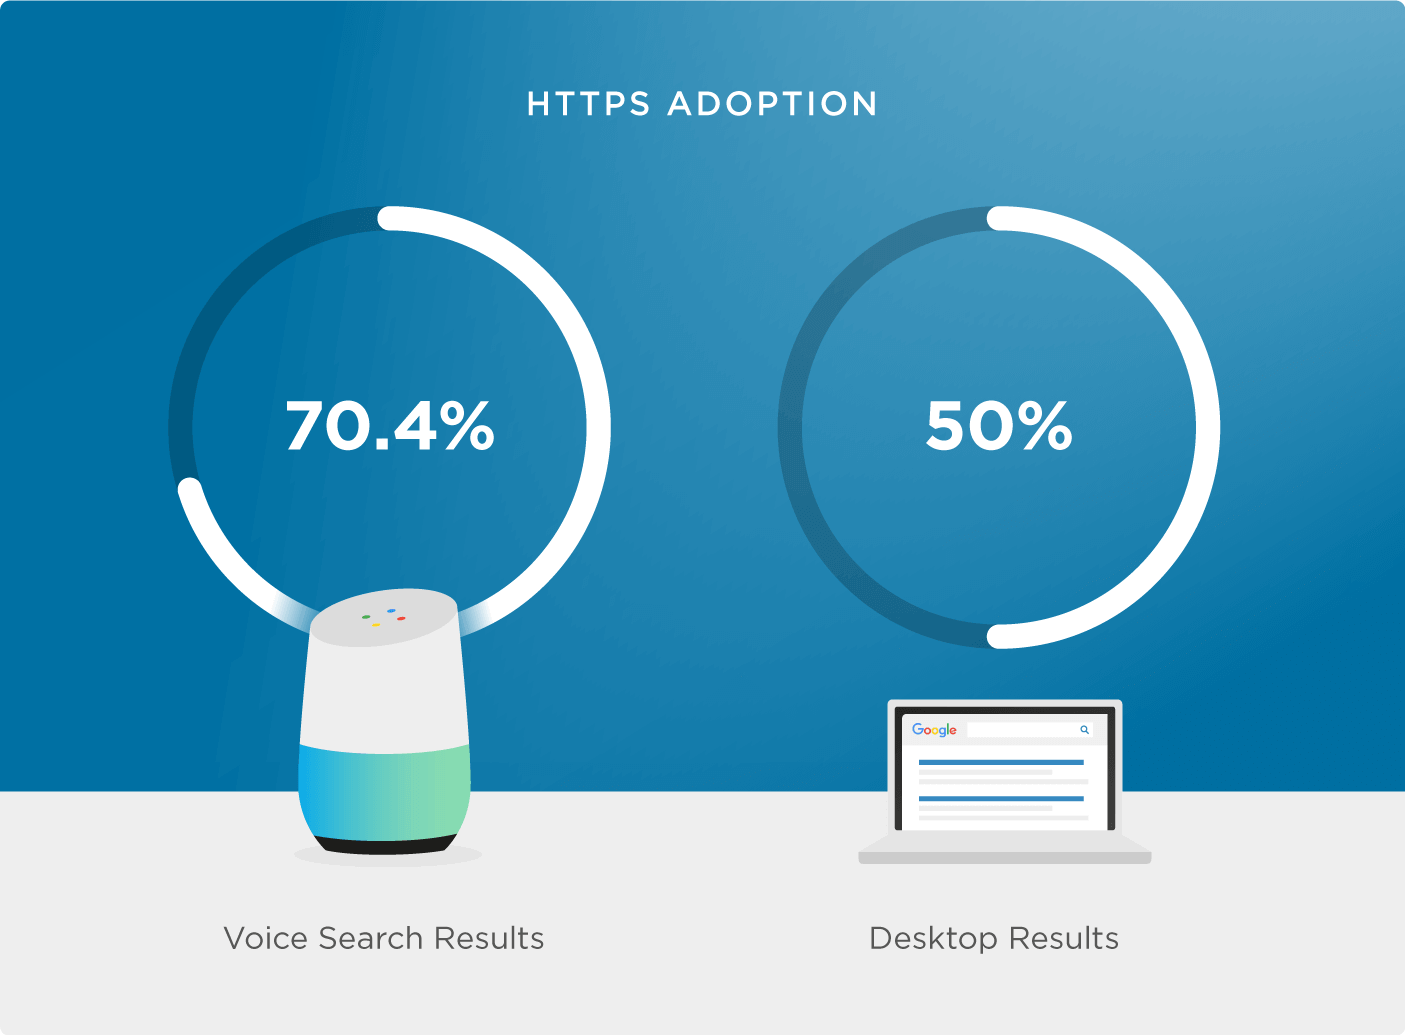 Adopting HTTPS will give you an advantage in voice search SEO. Image courtesy of Backlinko.